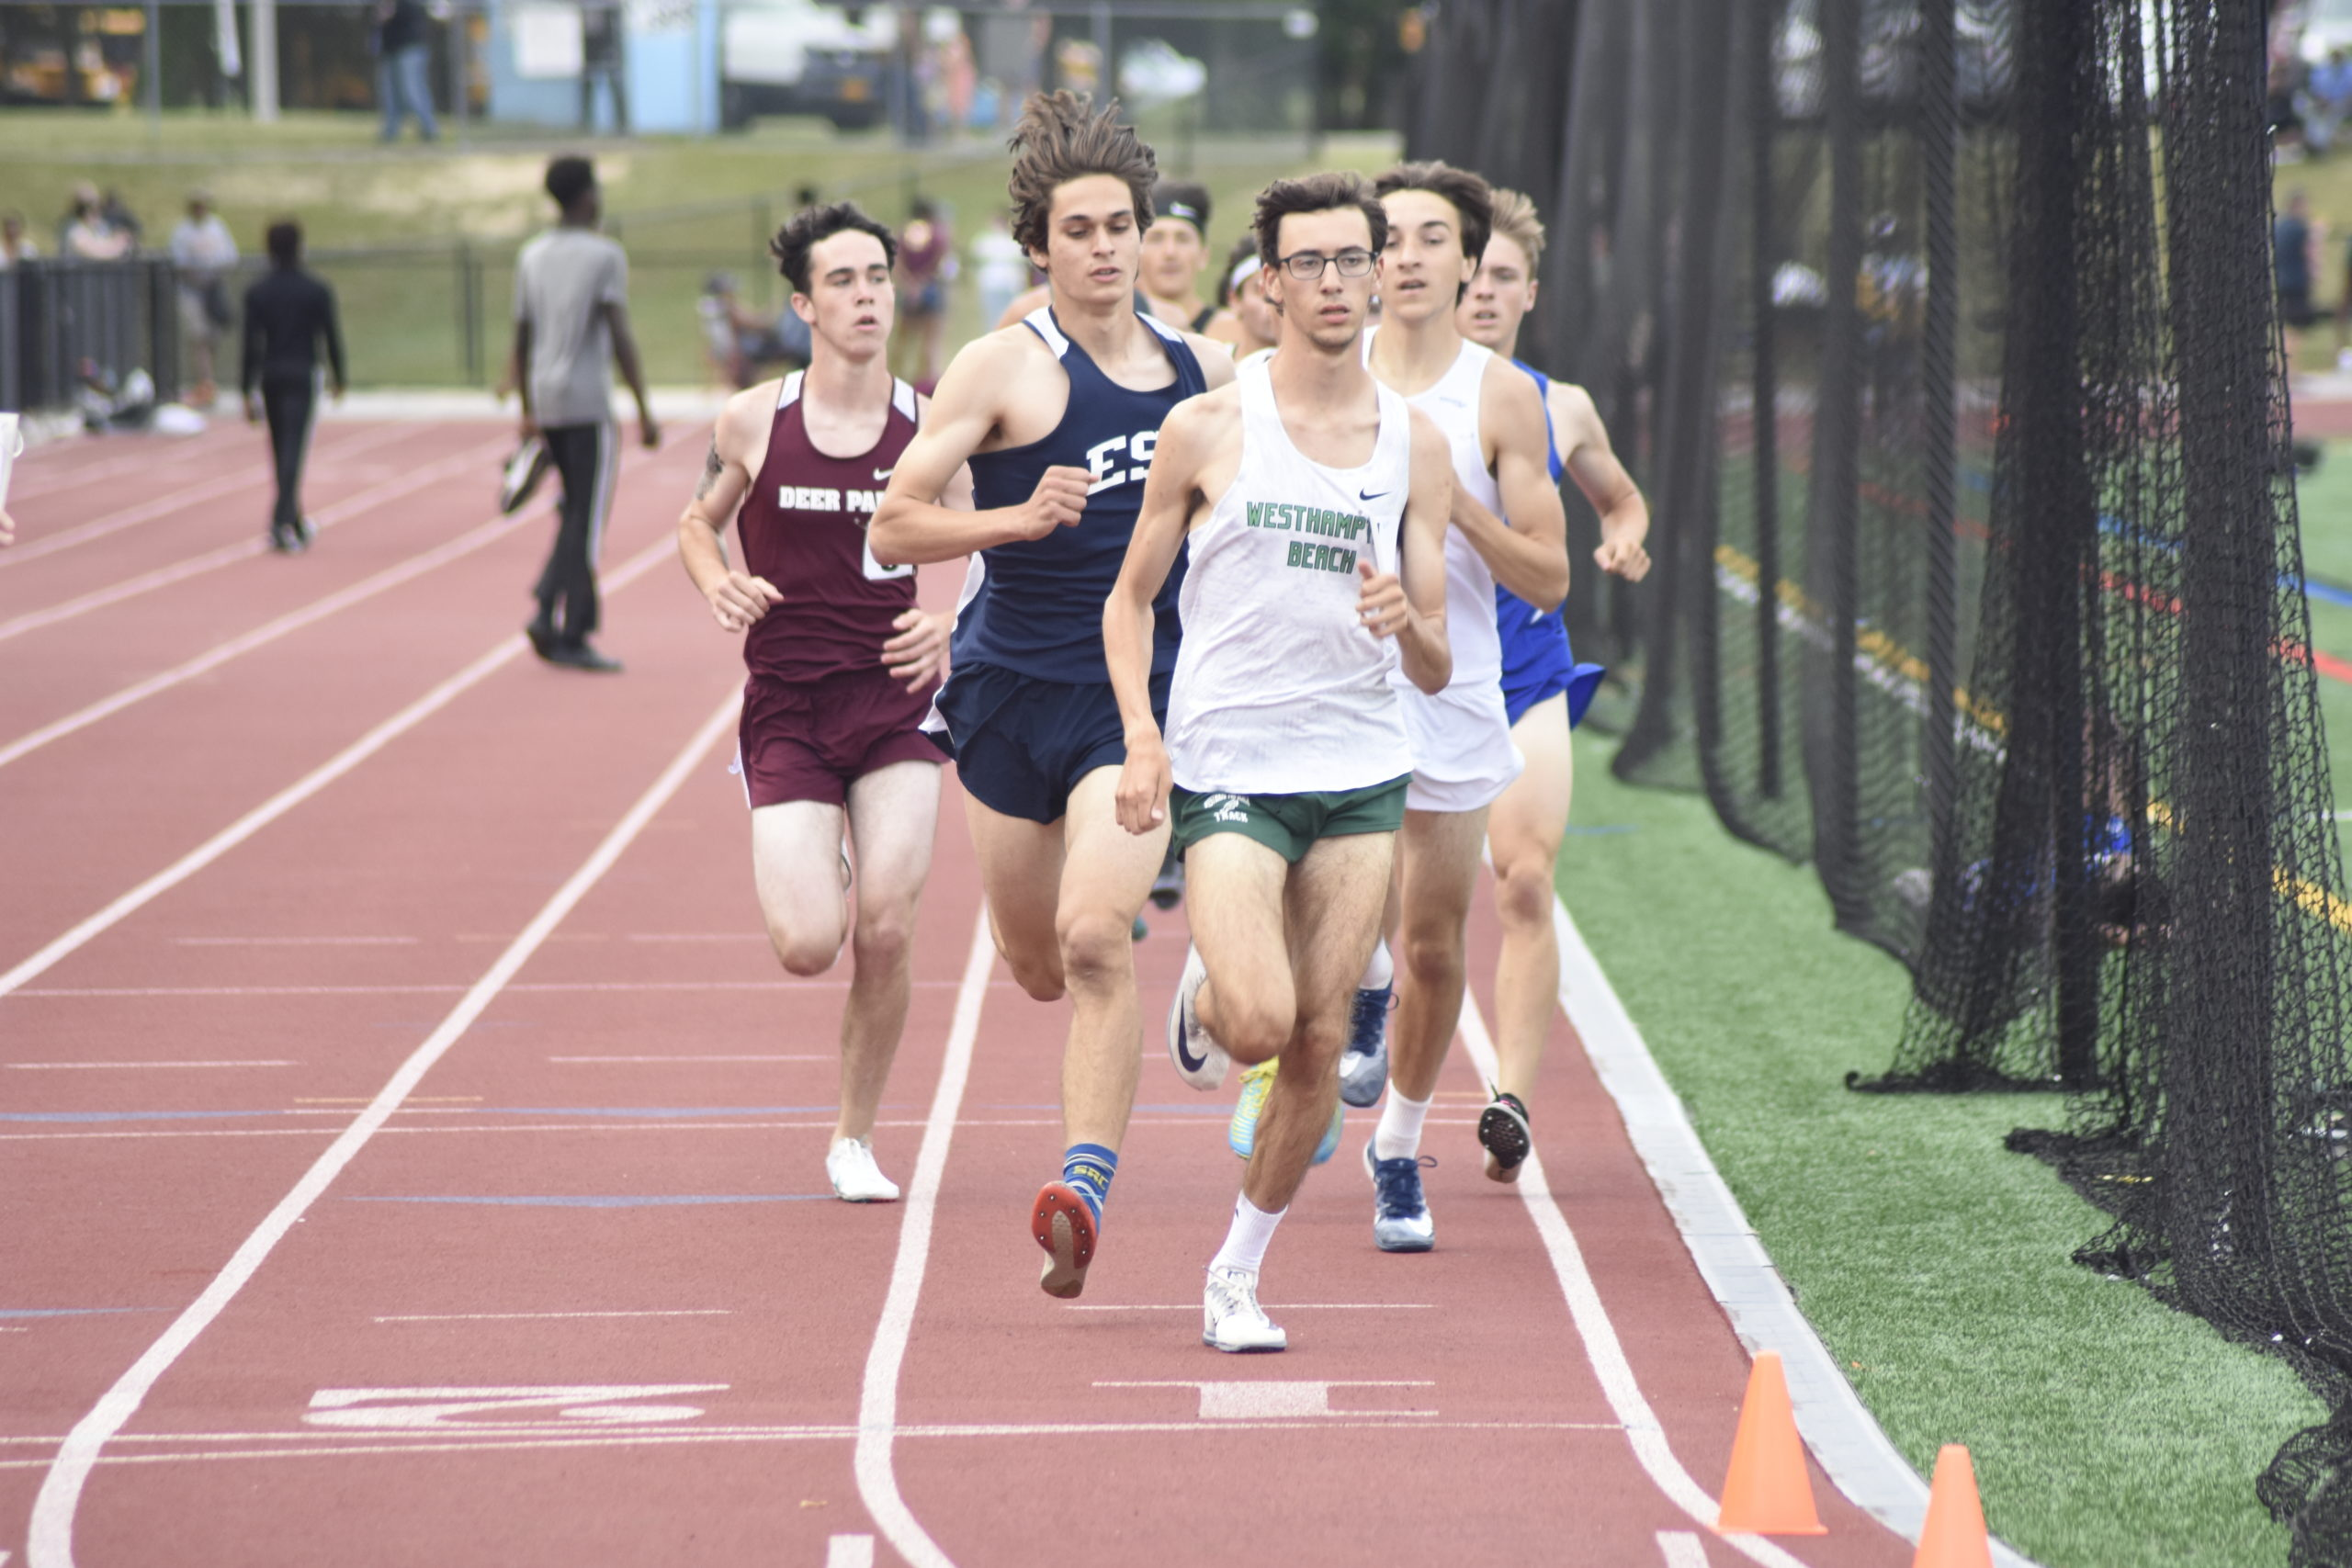 Westhampton Beach junior Gavin Ehlers had to fend off Eastport-South Manor senior Michael Silveri for the county title in the 1,600-meter race on Friday.